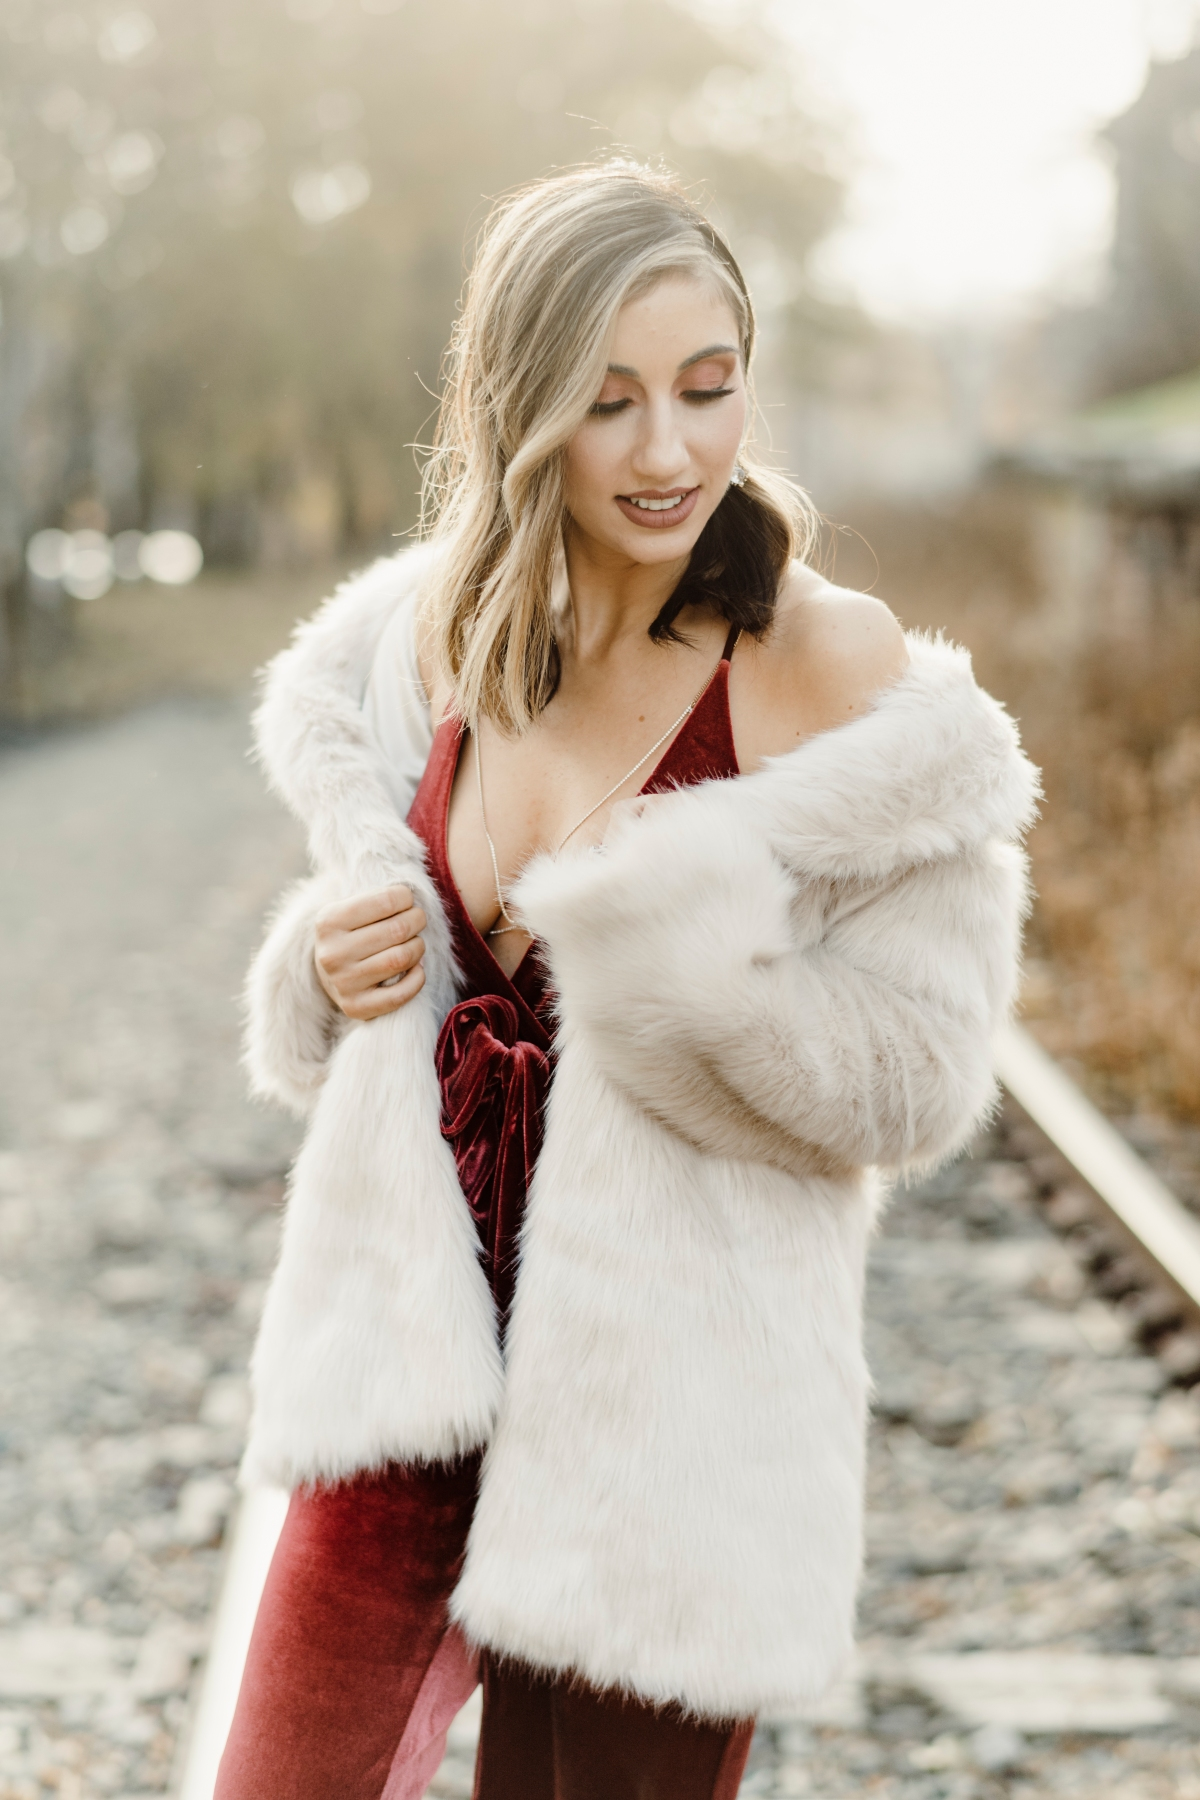 velvet-velour-jumpsuit-romper-glam-faux-fur-glamorus-stunning-holiday-NYE-fashion-style-look-book